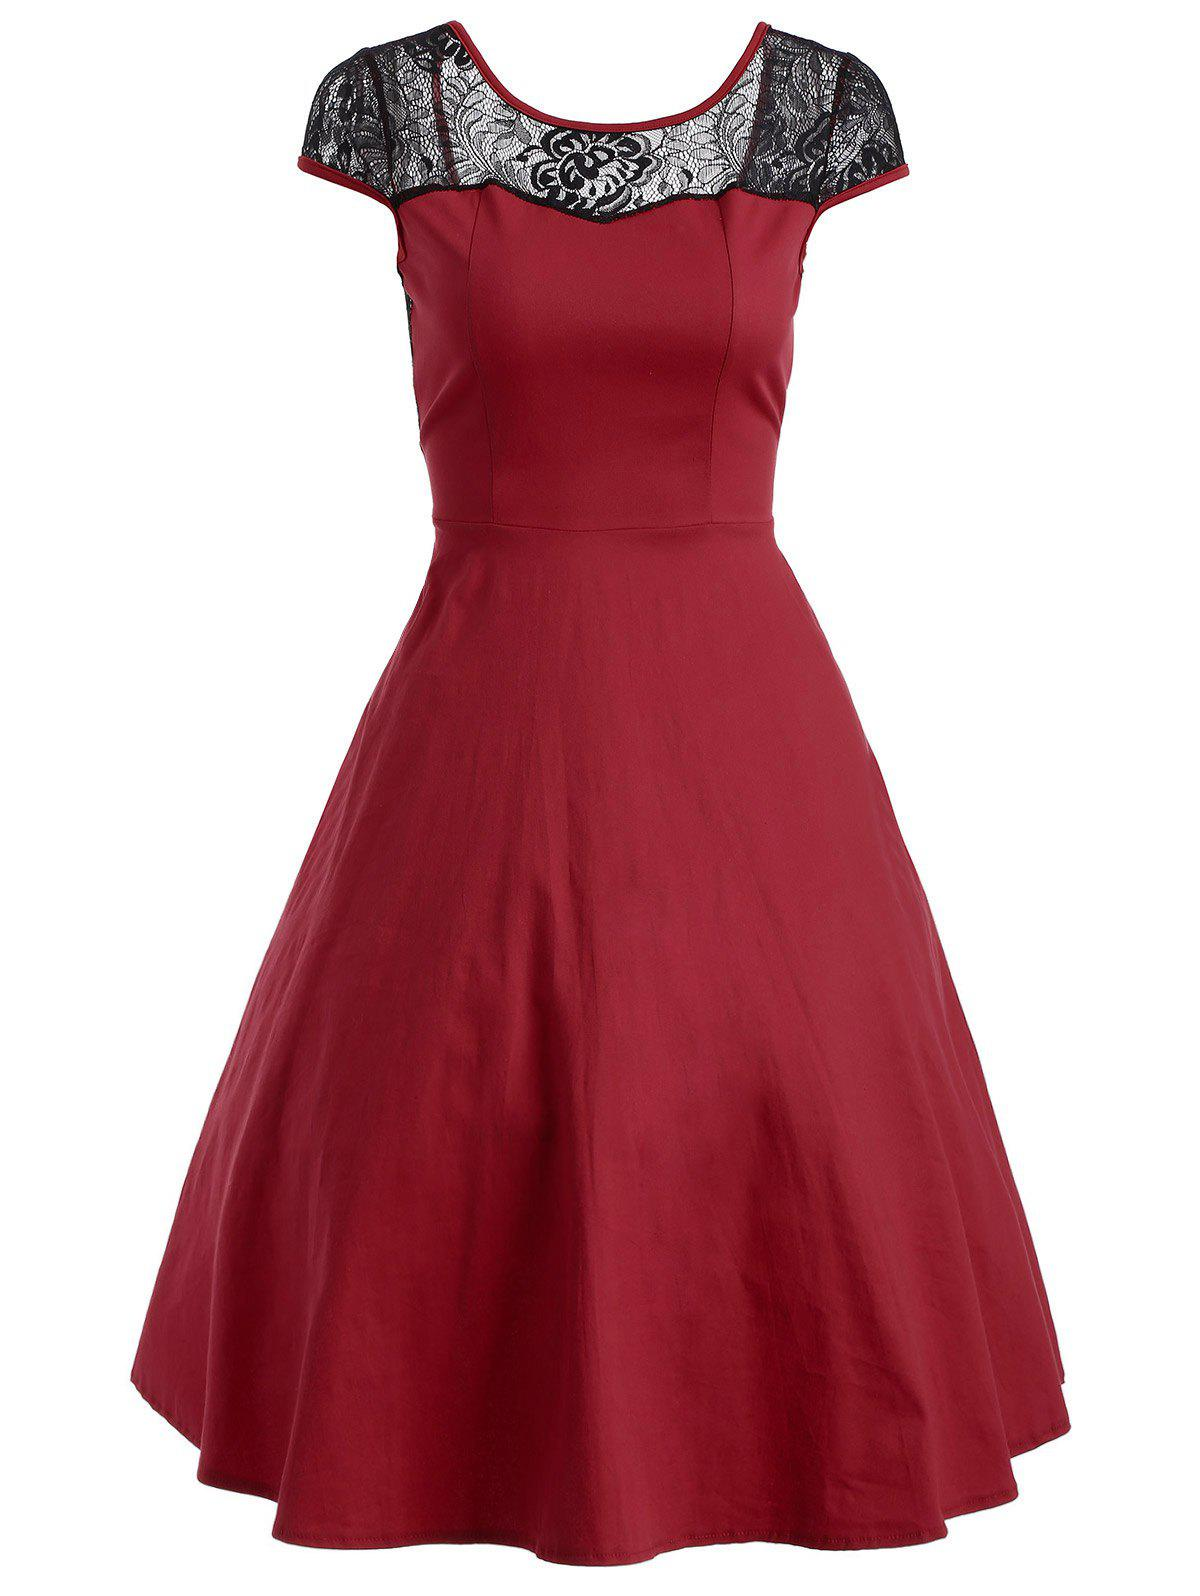 Floral Lace Panel Swing Dress - RED L